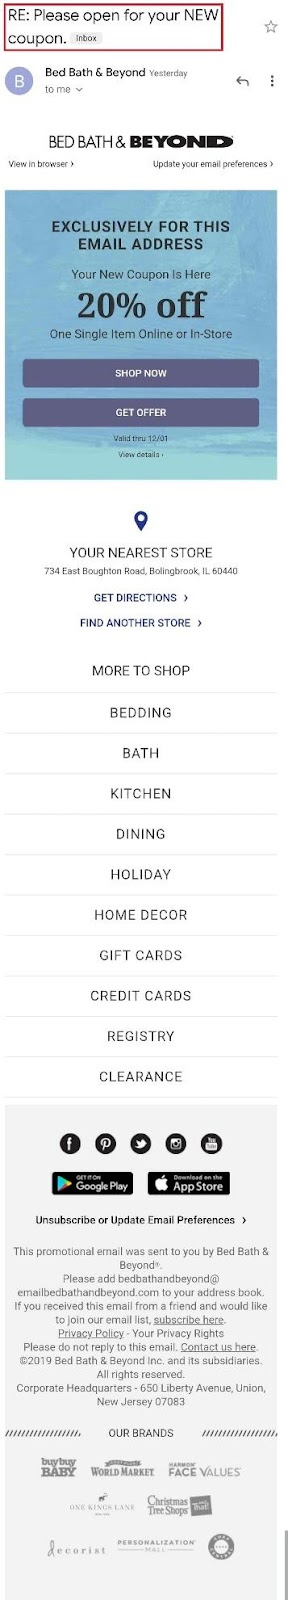 bed bath and beyond email example